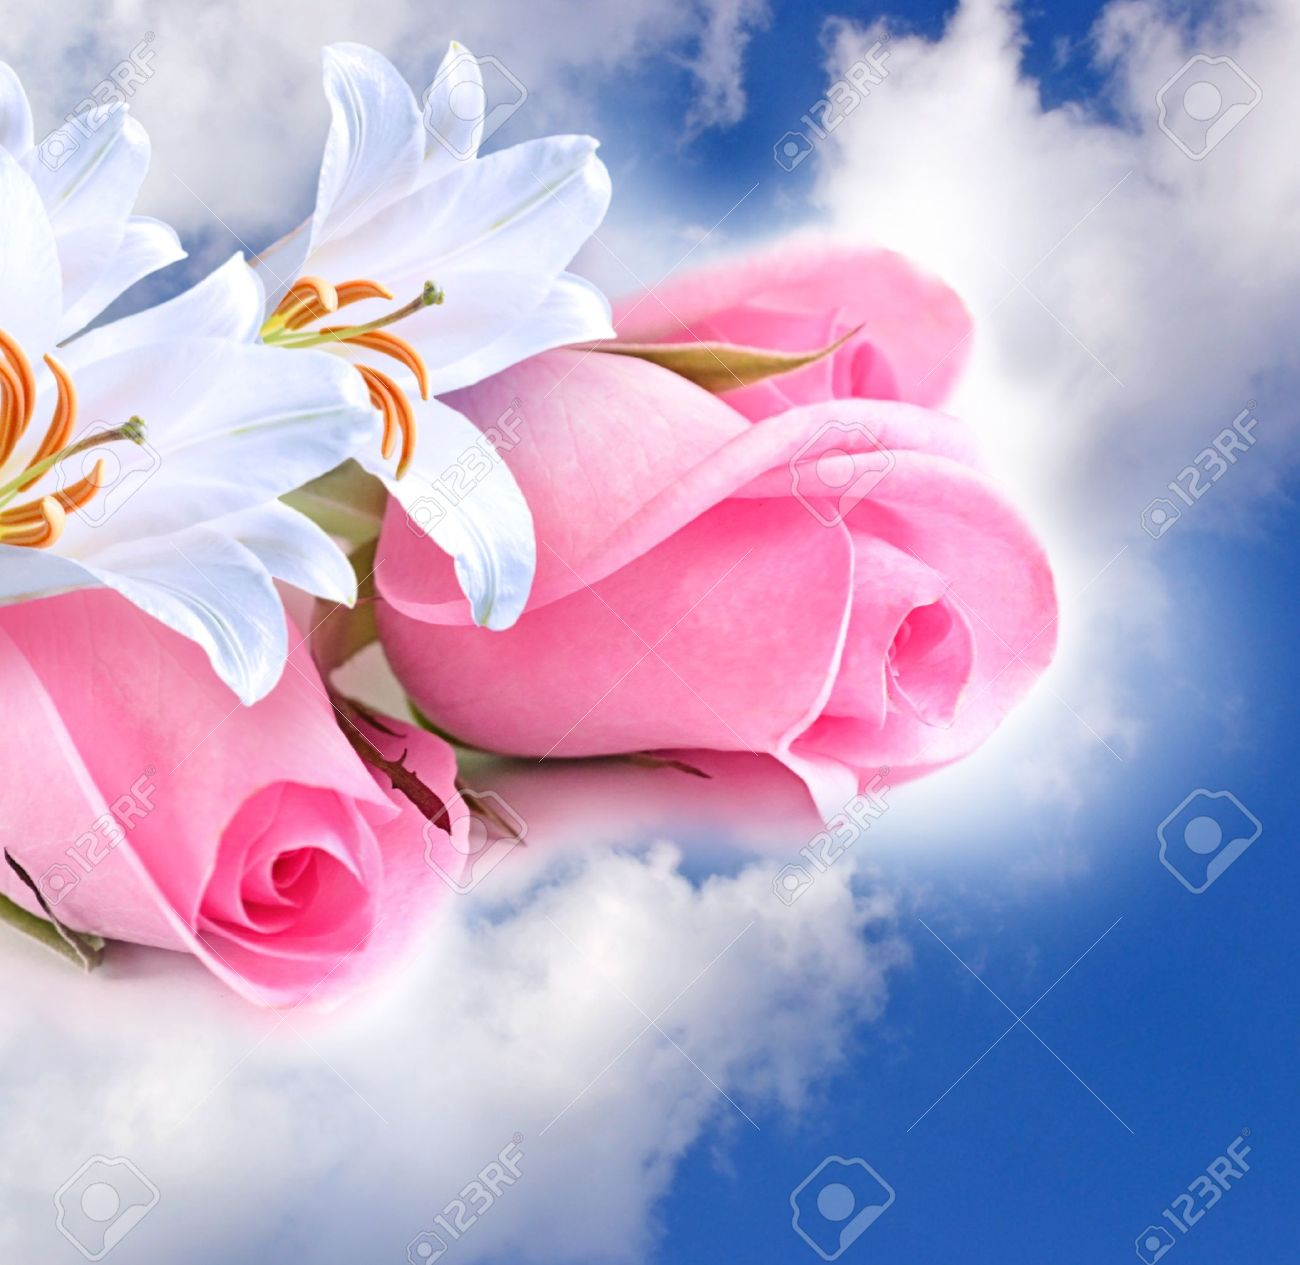 Pink roses and lilies in the clouds - 14311430